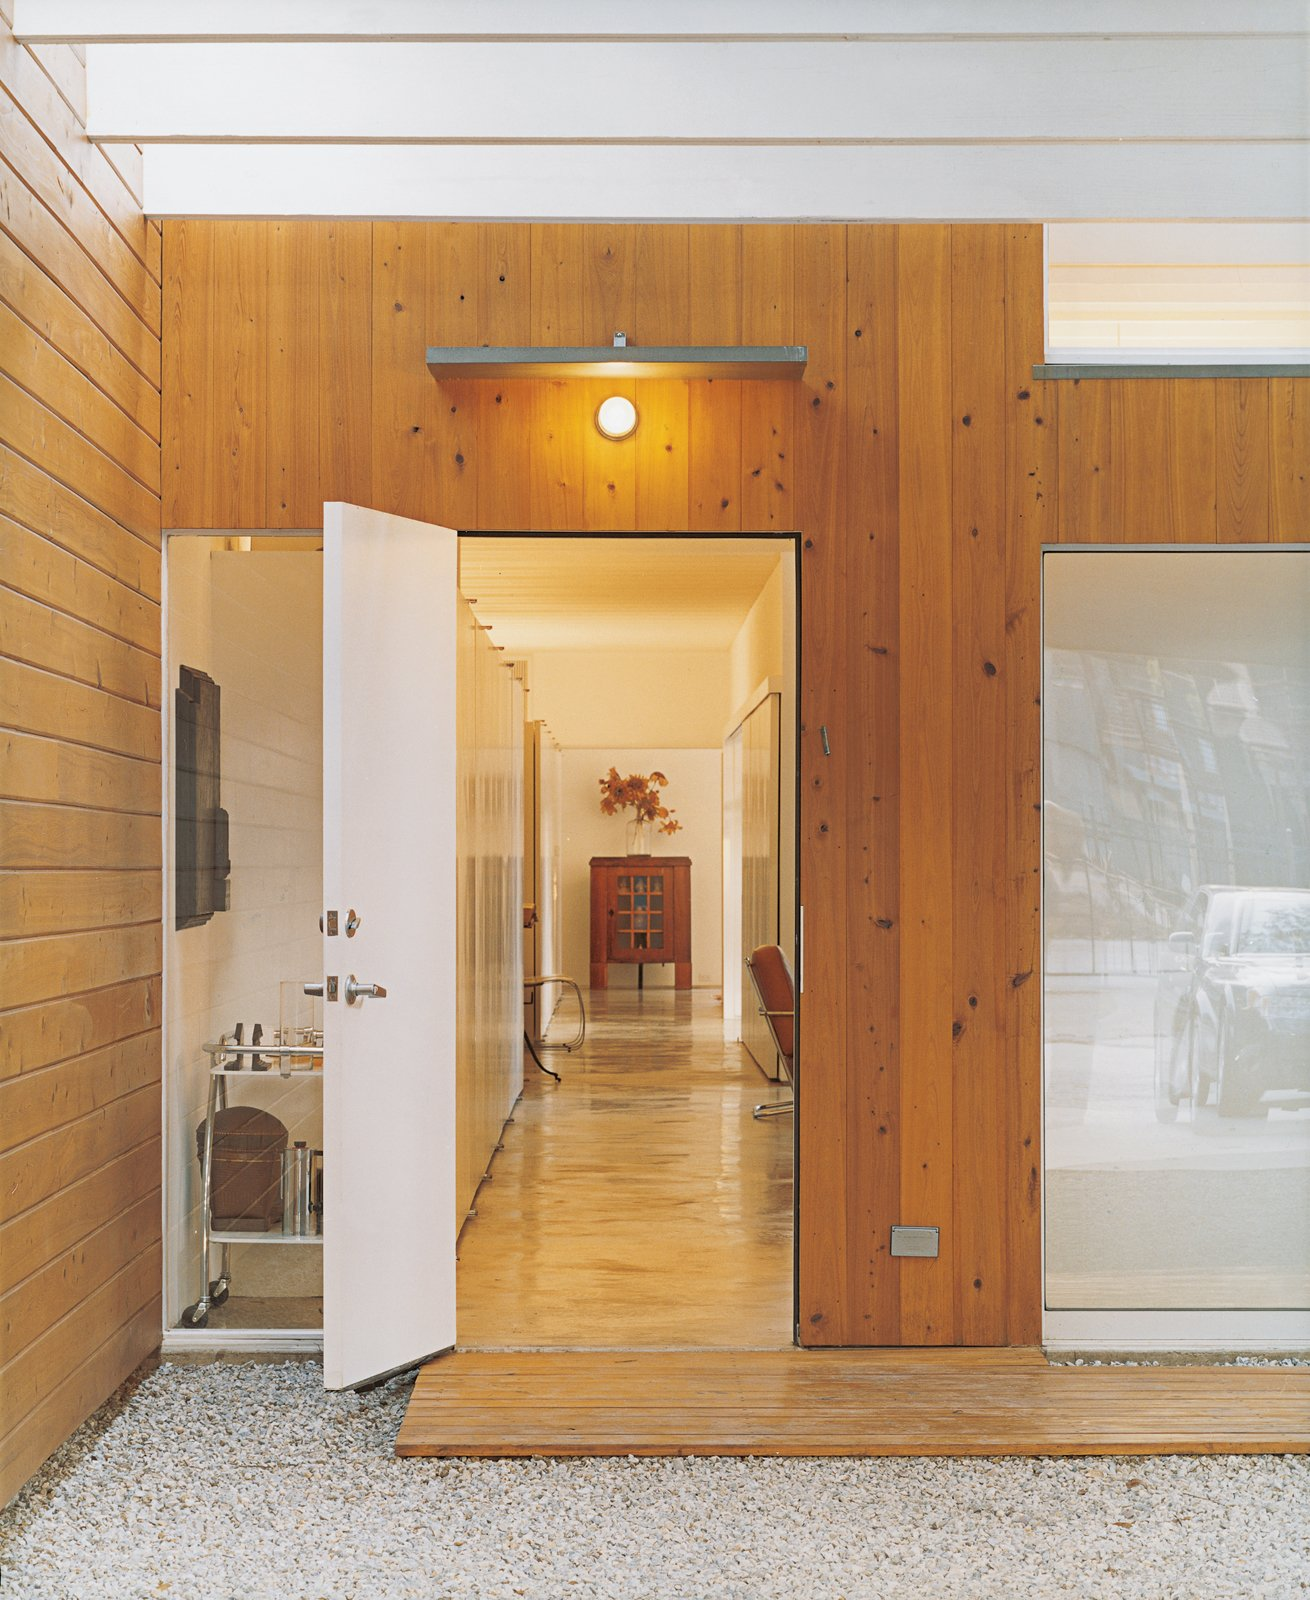 The backlighting Baum included above the storage units lining the hall is revealed at dusk. The lighting provides a warm glow throughout the house.  60+ Modern Lighting Solutions by Dwell from Bringing Families Back to Downtown Dallas